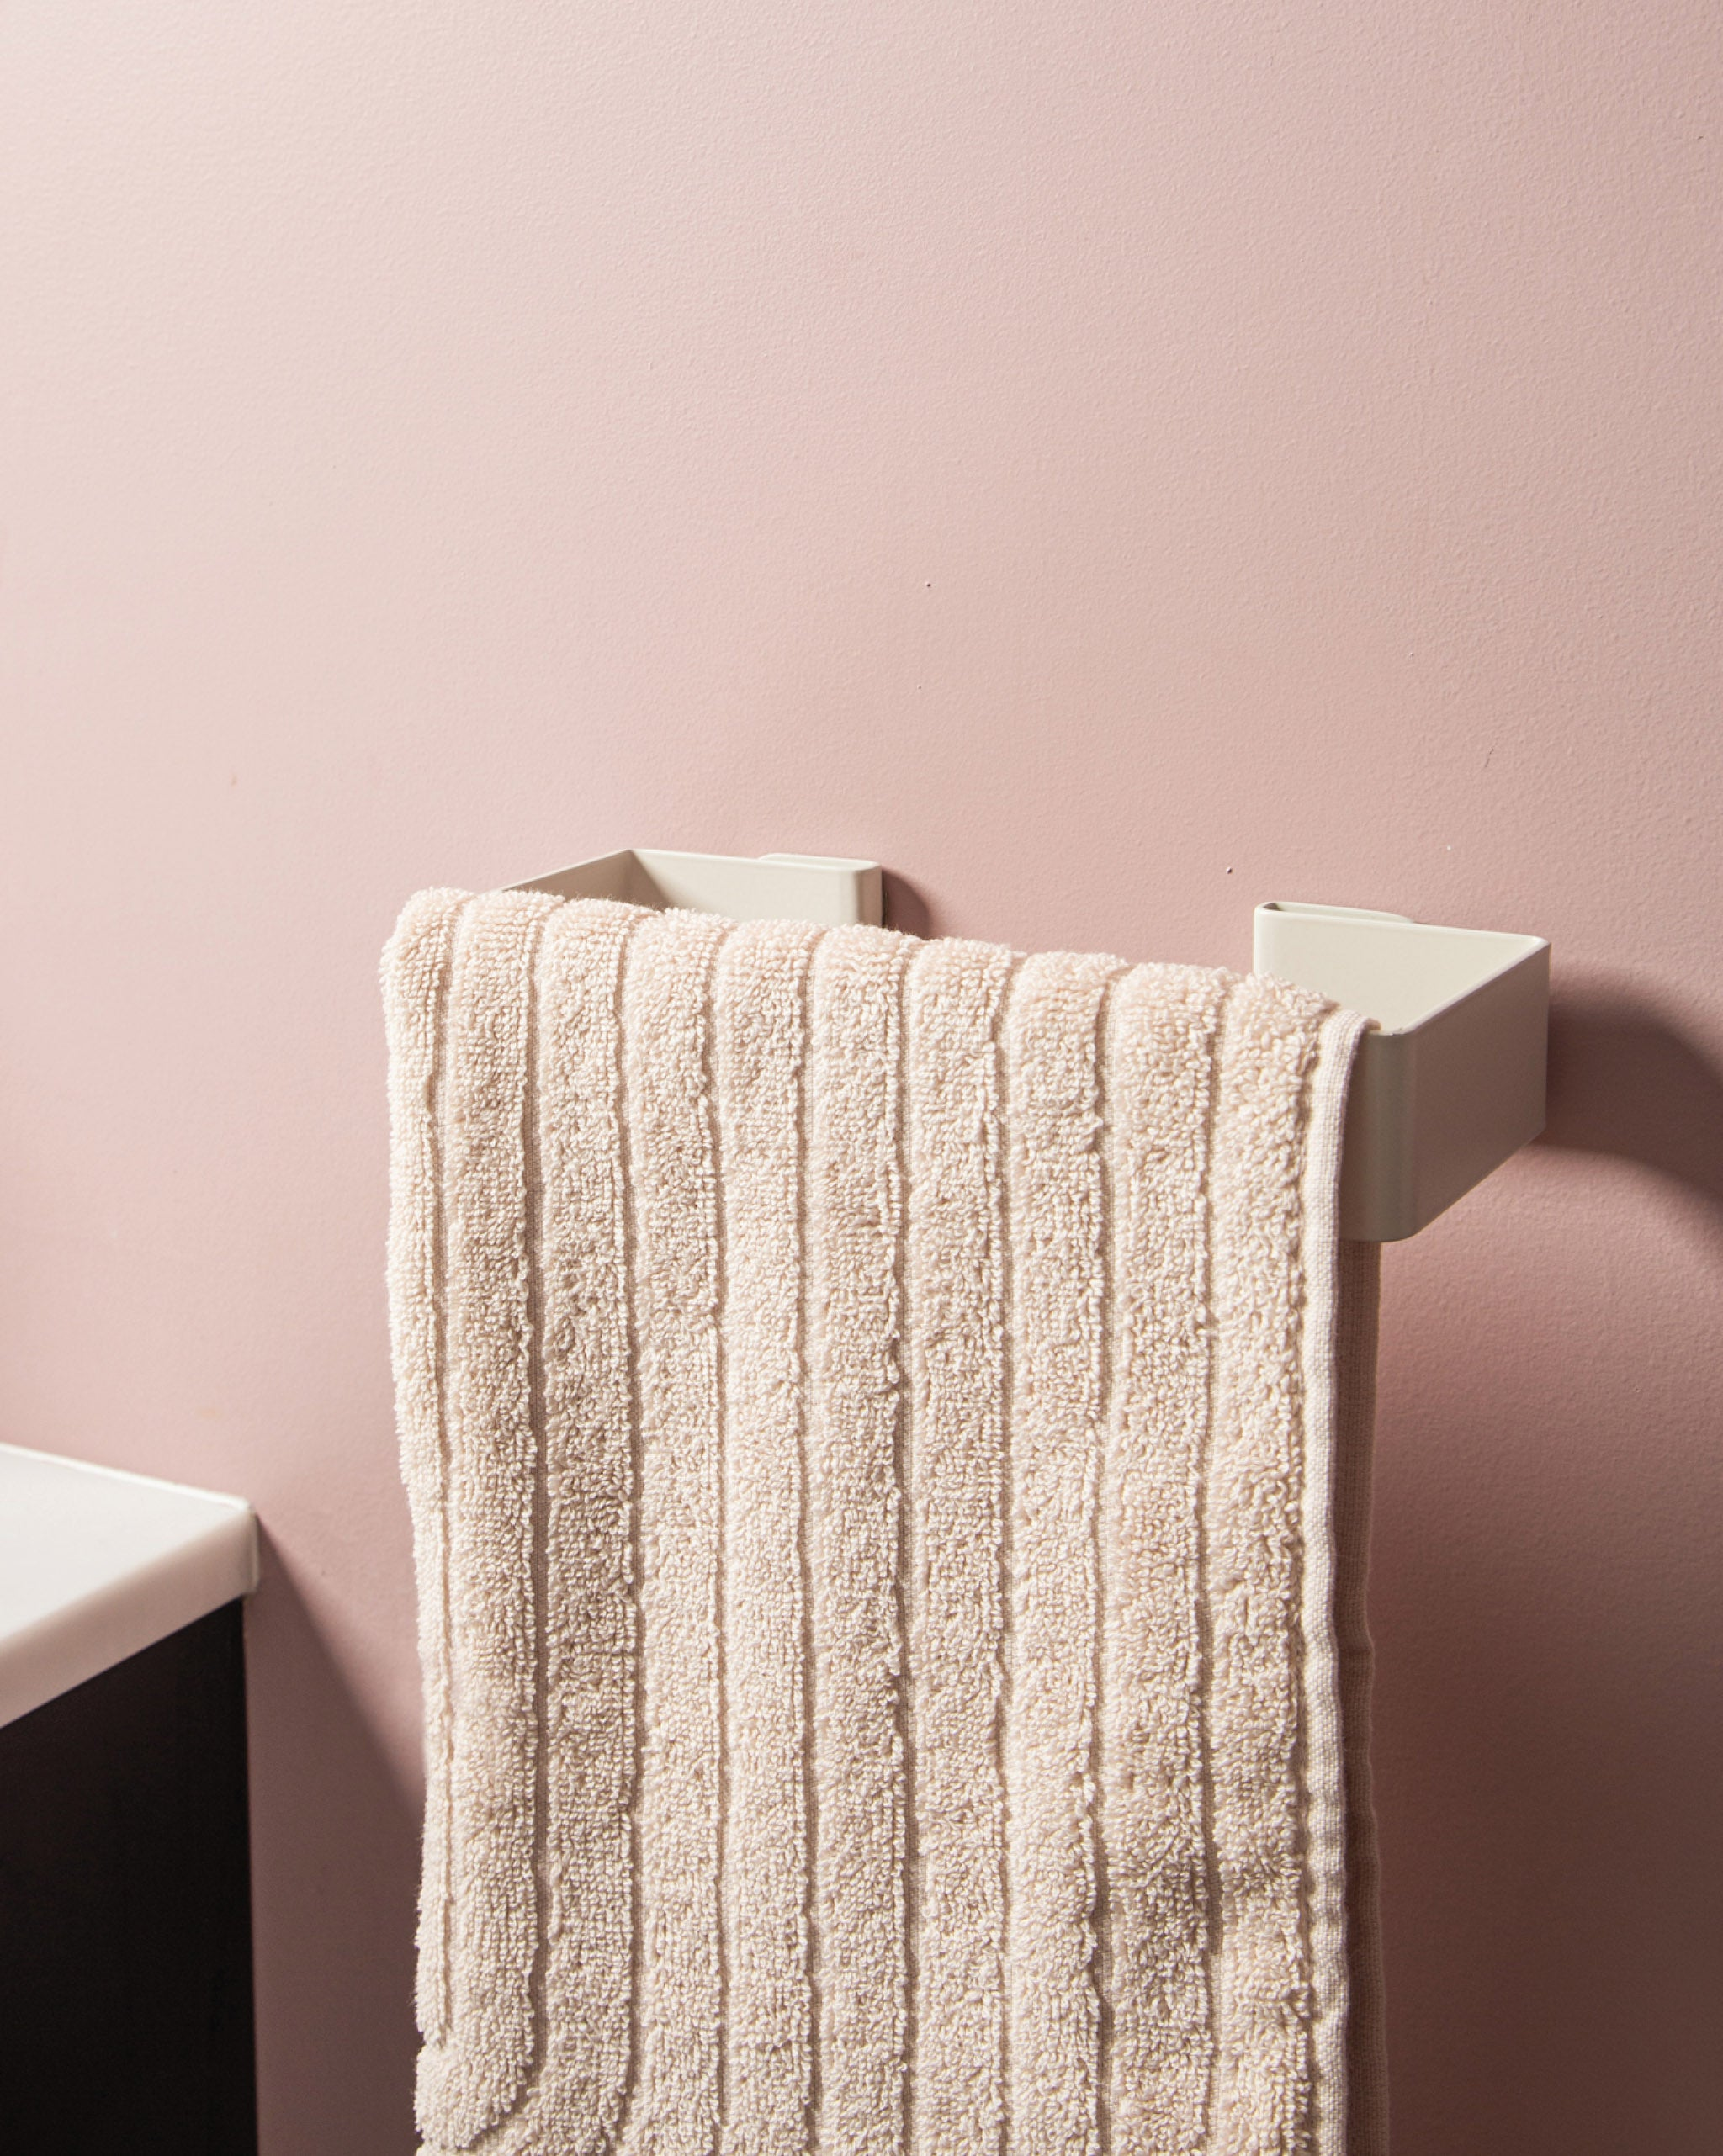 Hand Towel Holder - White